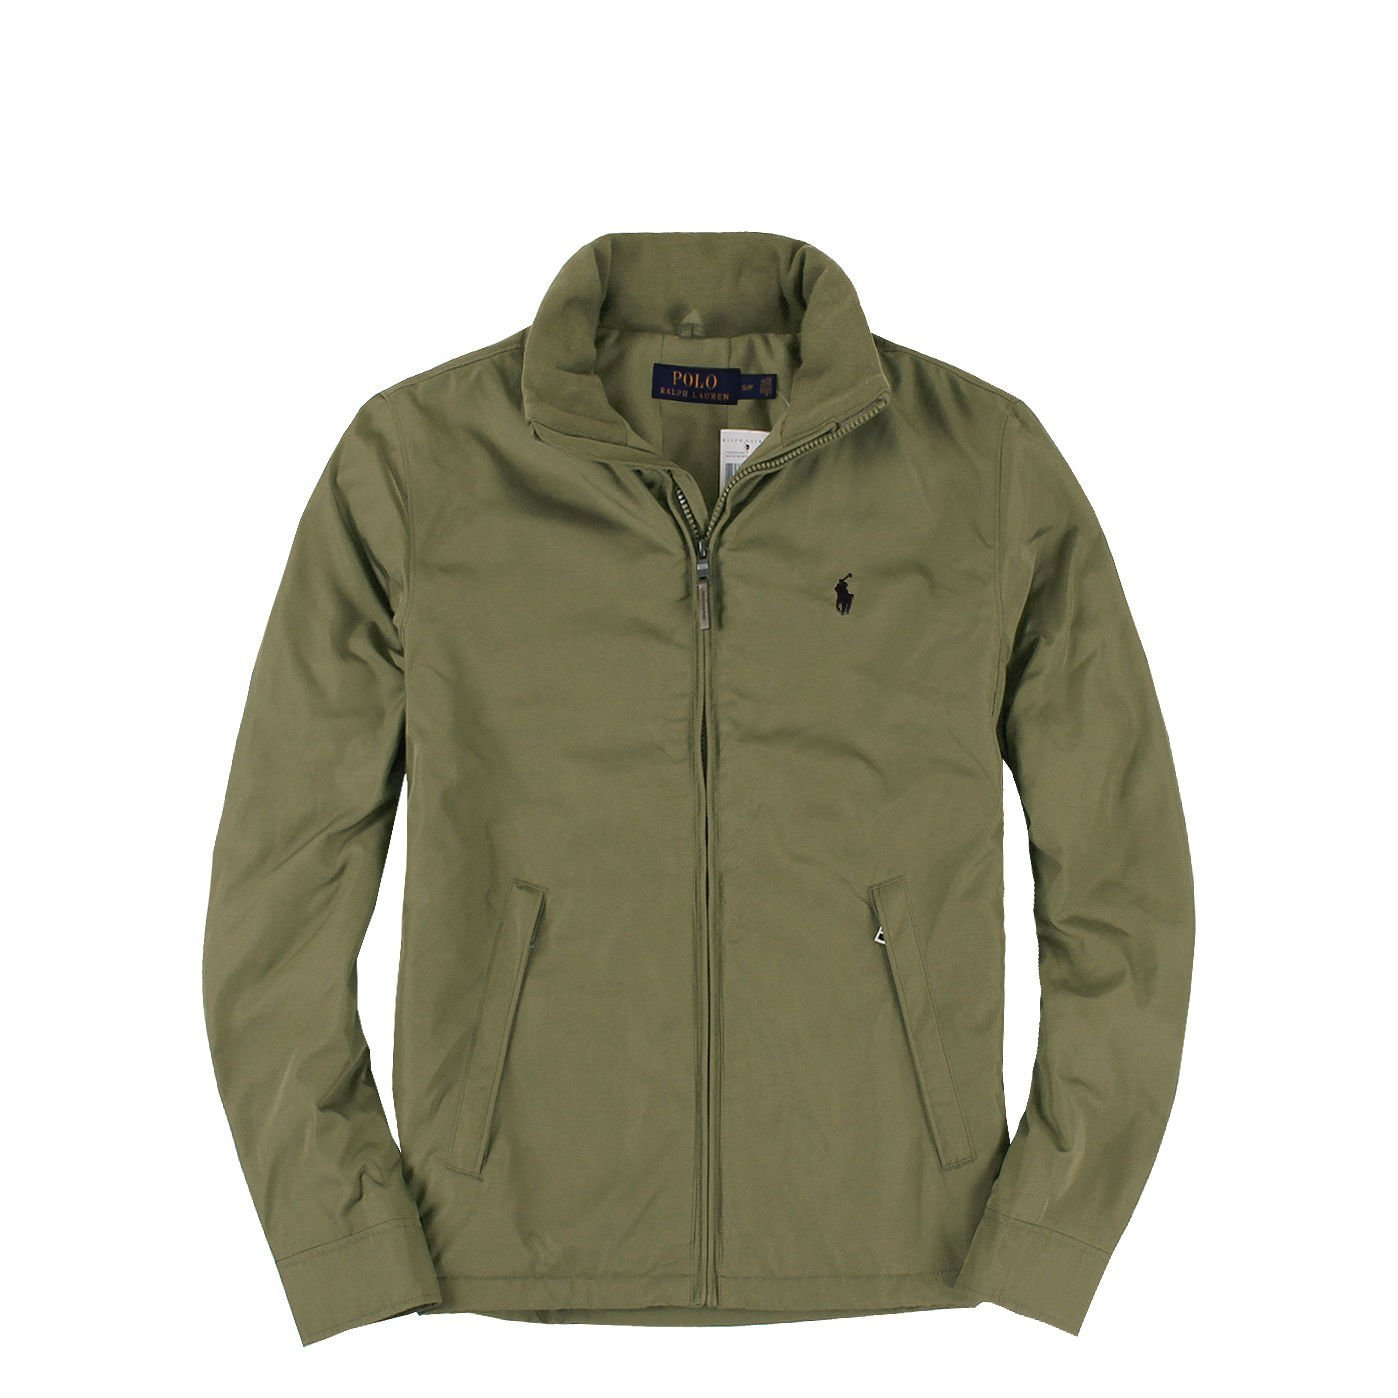 RALPH LAUREN PERRY LINED JACKET ROZ.- L NOWY